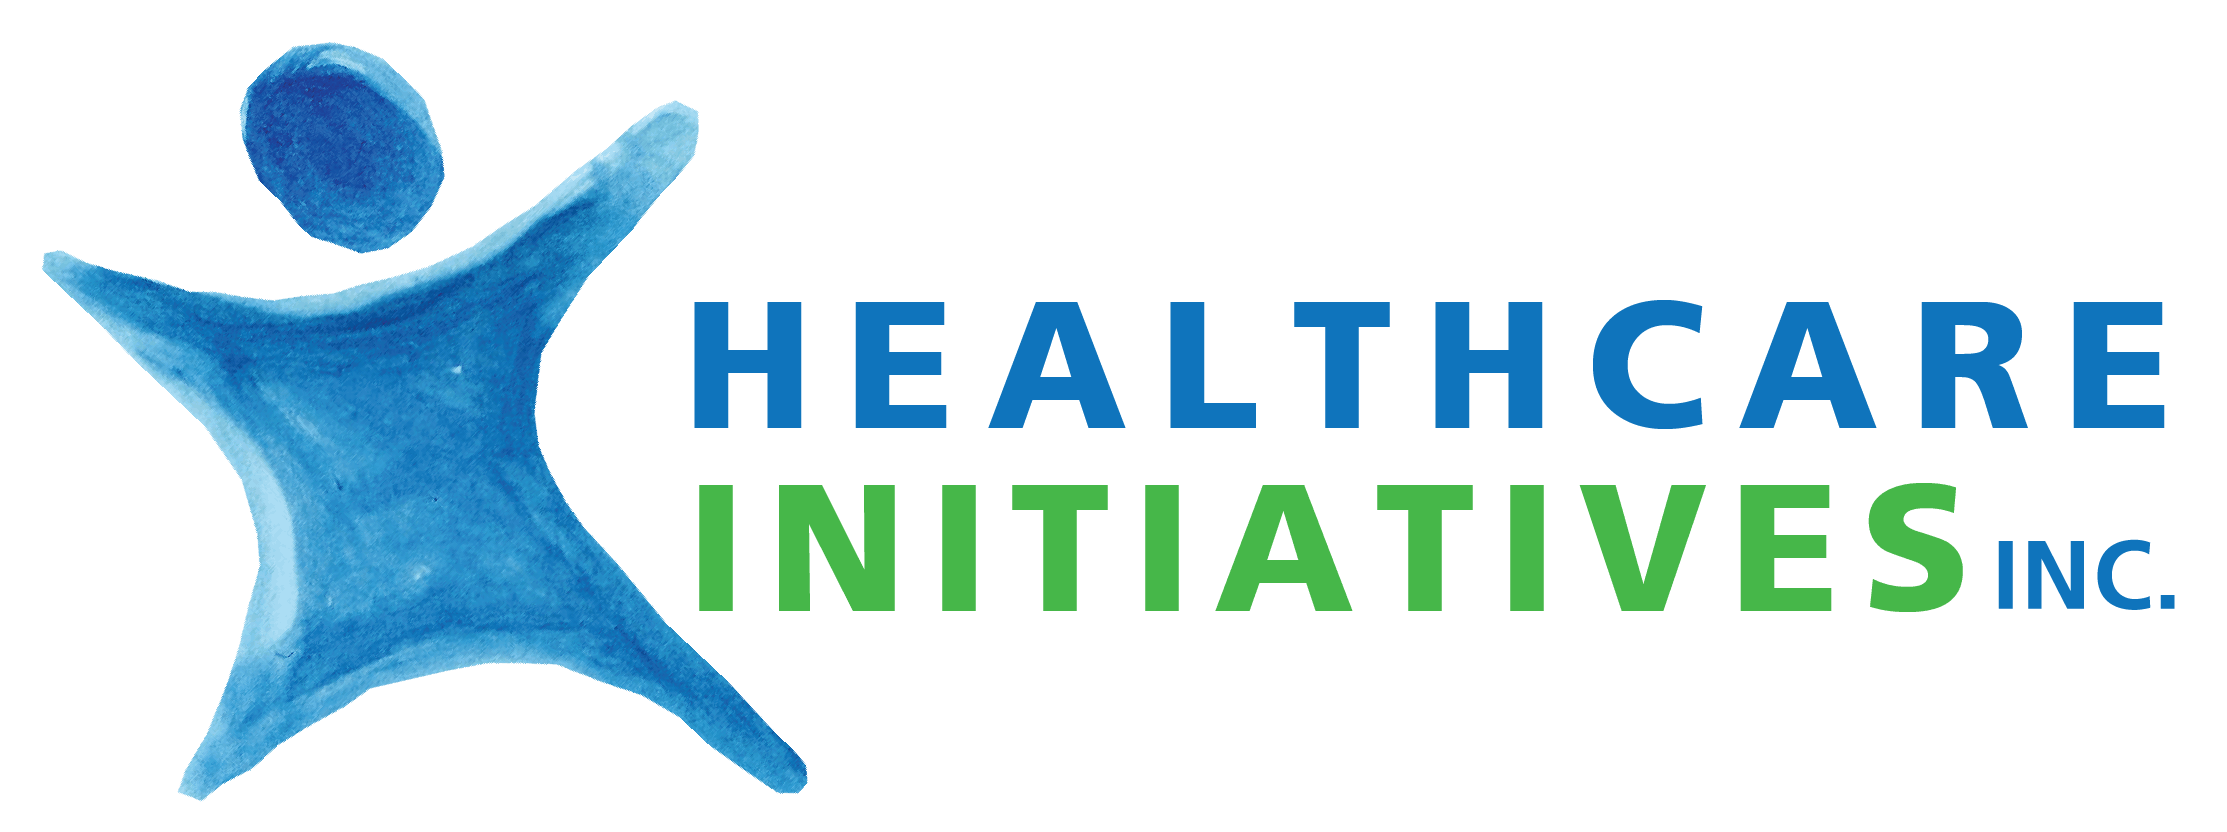 healthcare initiatives FINAL logo-01